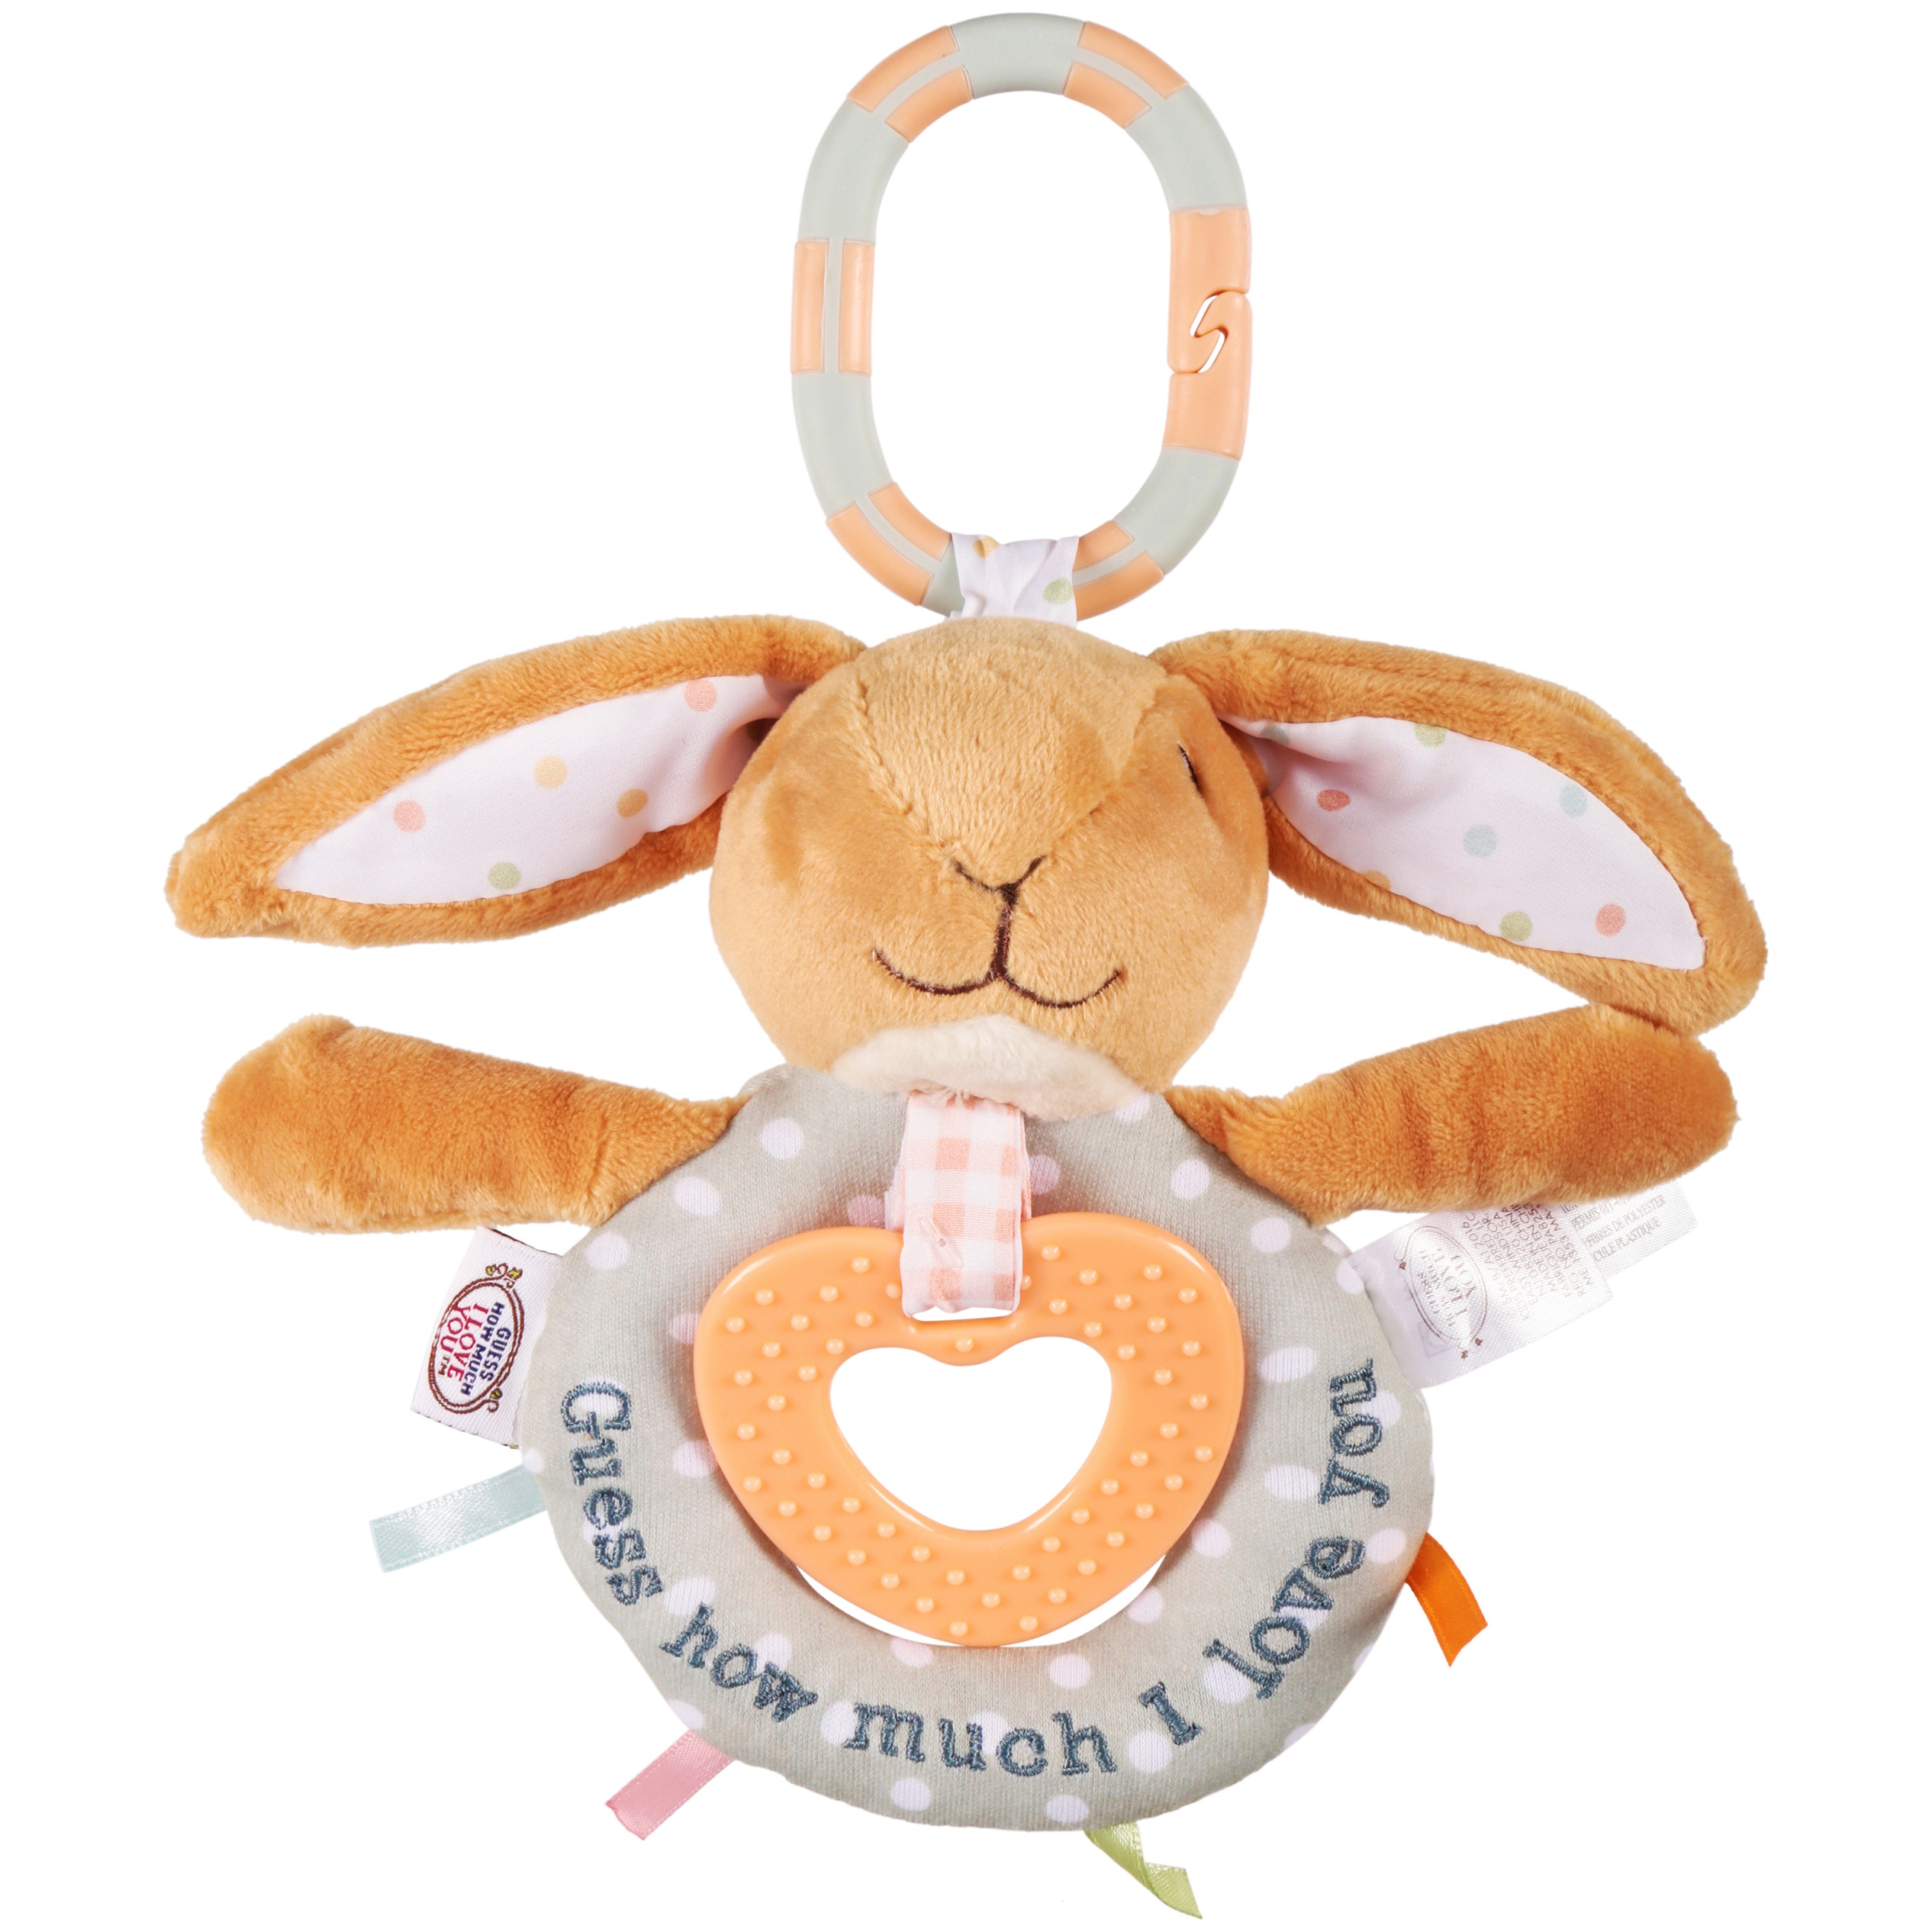 Guess How Much I Love You Teether Activity Toy